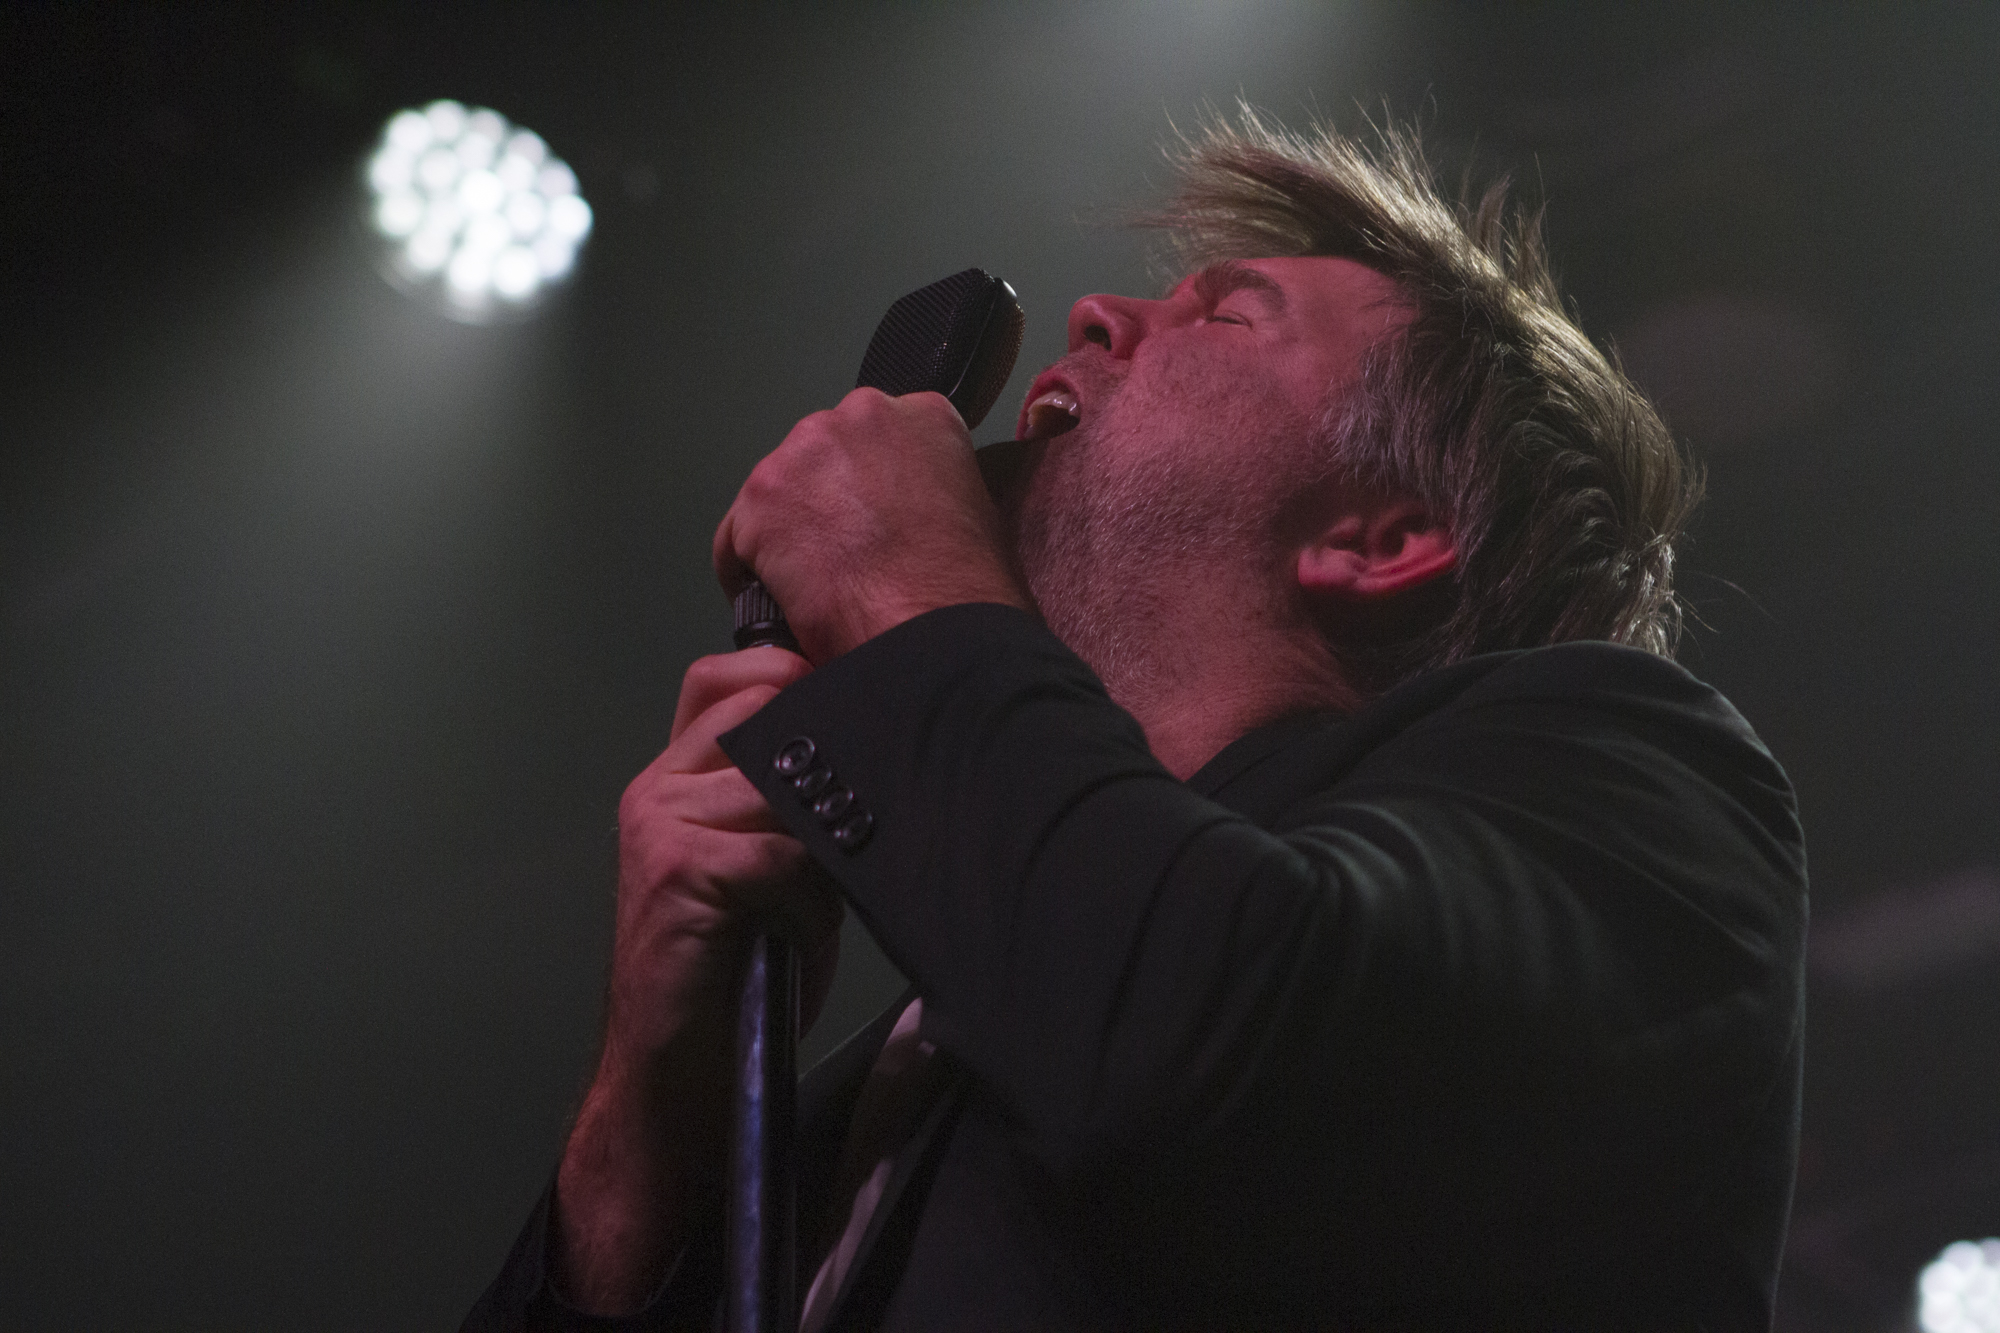 LCD Soundsystem plays at Brooklyn Steel in Williamsburg, Brooklyn, New York on Dec. 12, 2017. (© Michael Katzif - Do not use or republish without prior consent.)